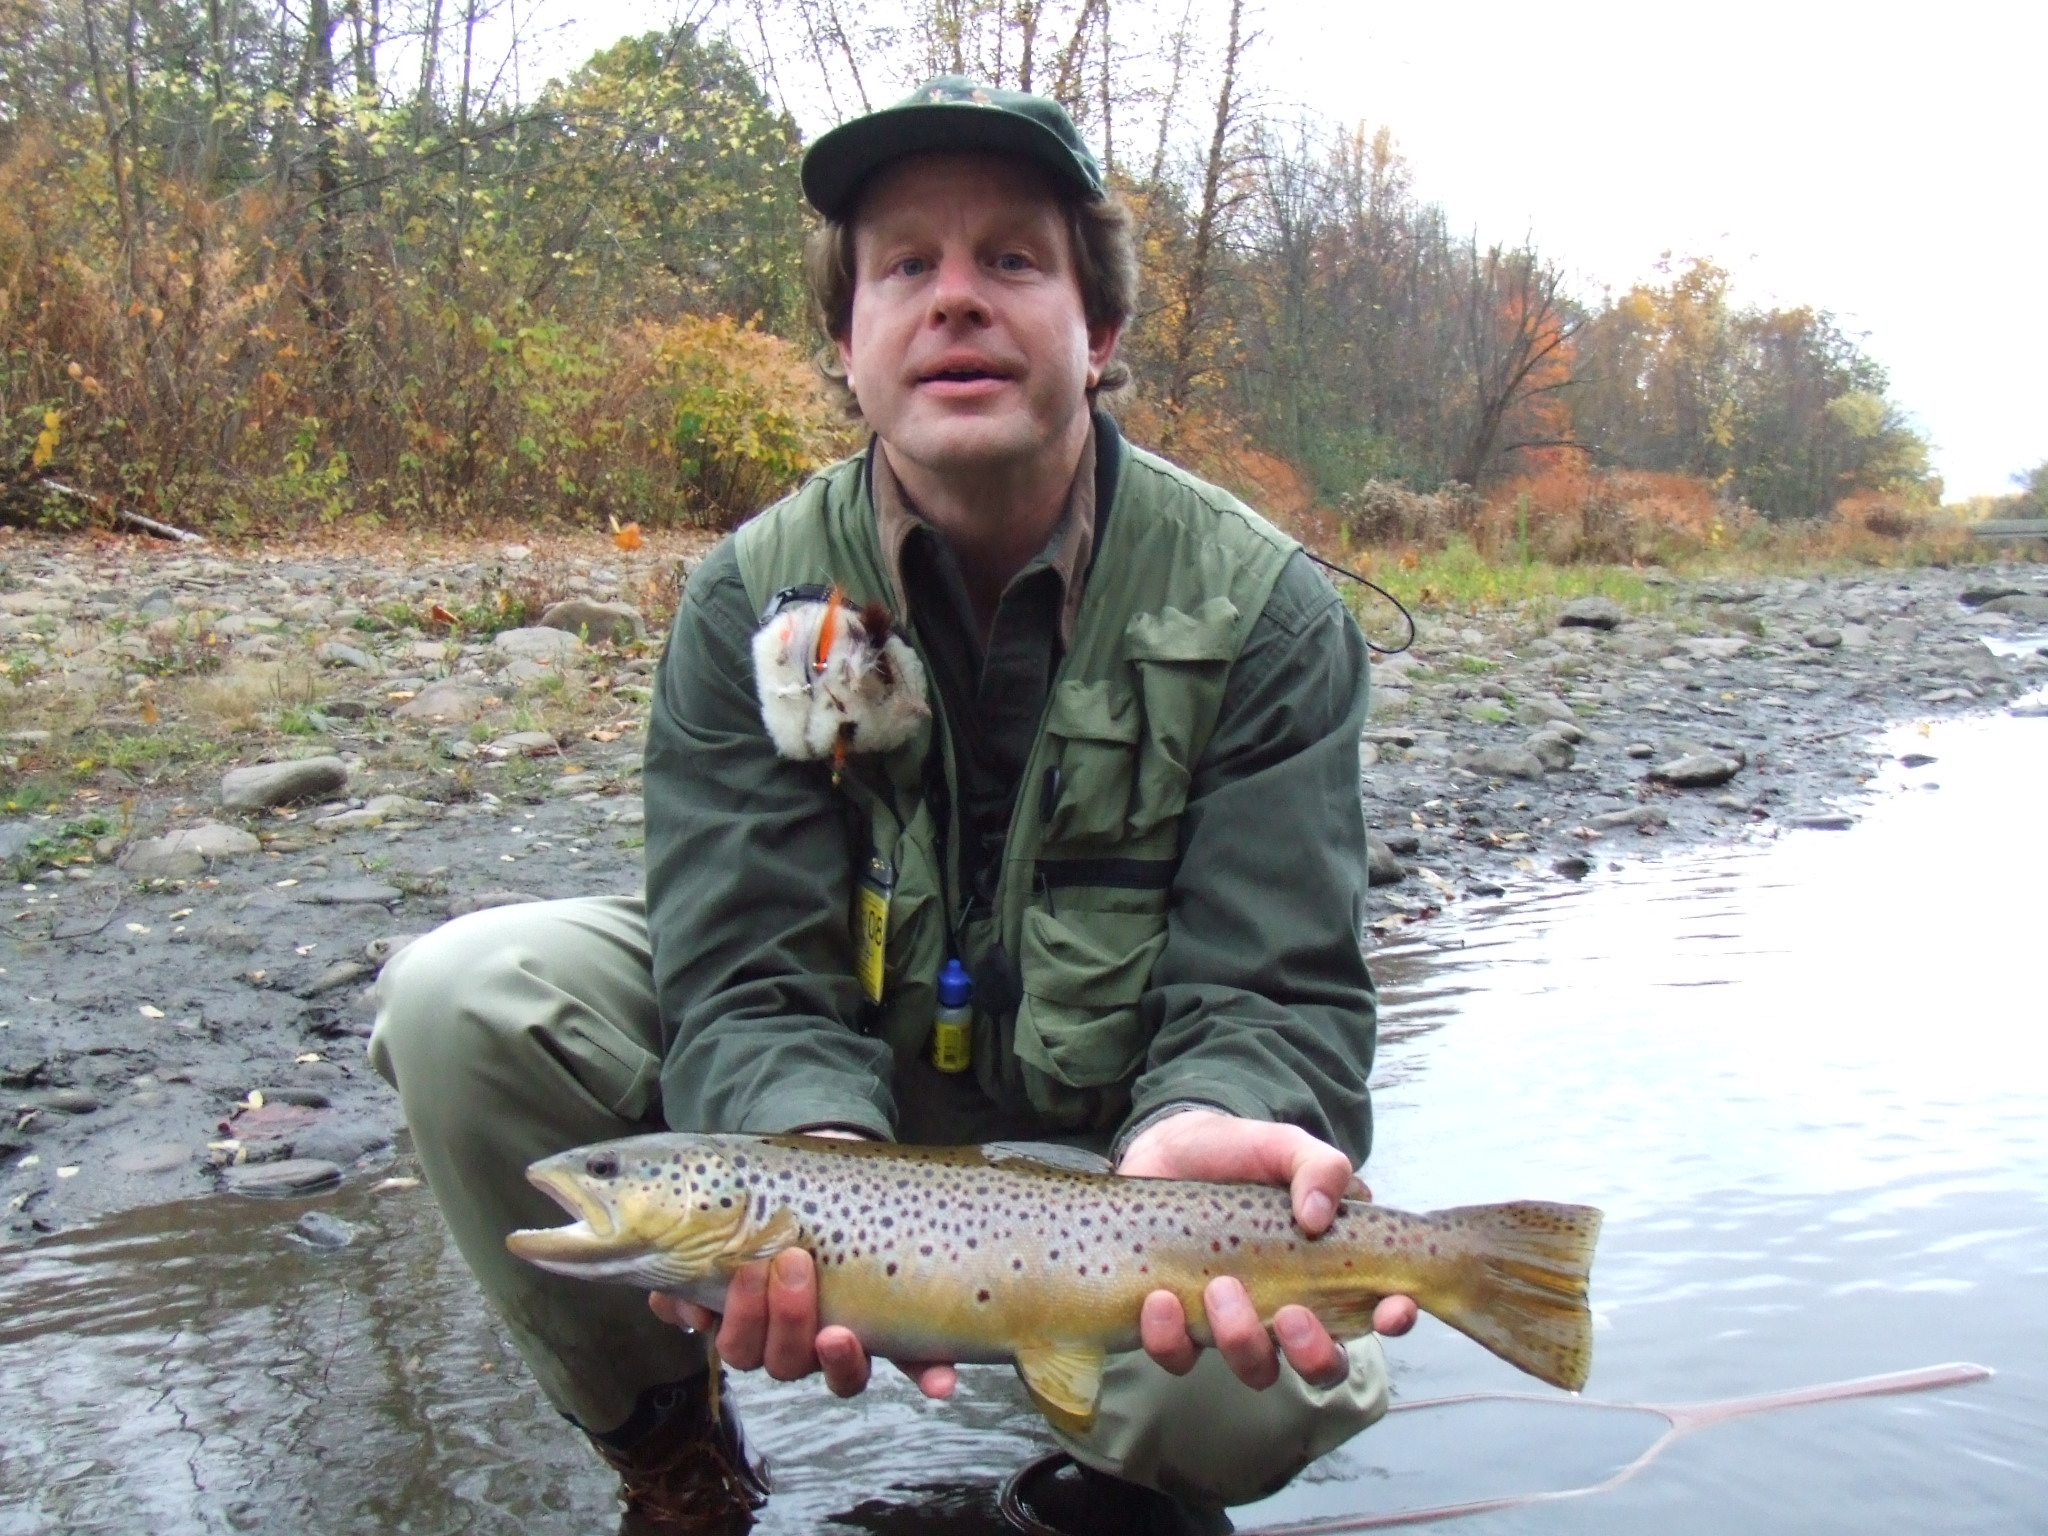 Fly Fishing for Wild Brown Trout Guided Tours   Northeast PA Fly Fishing